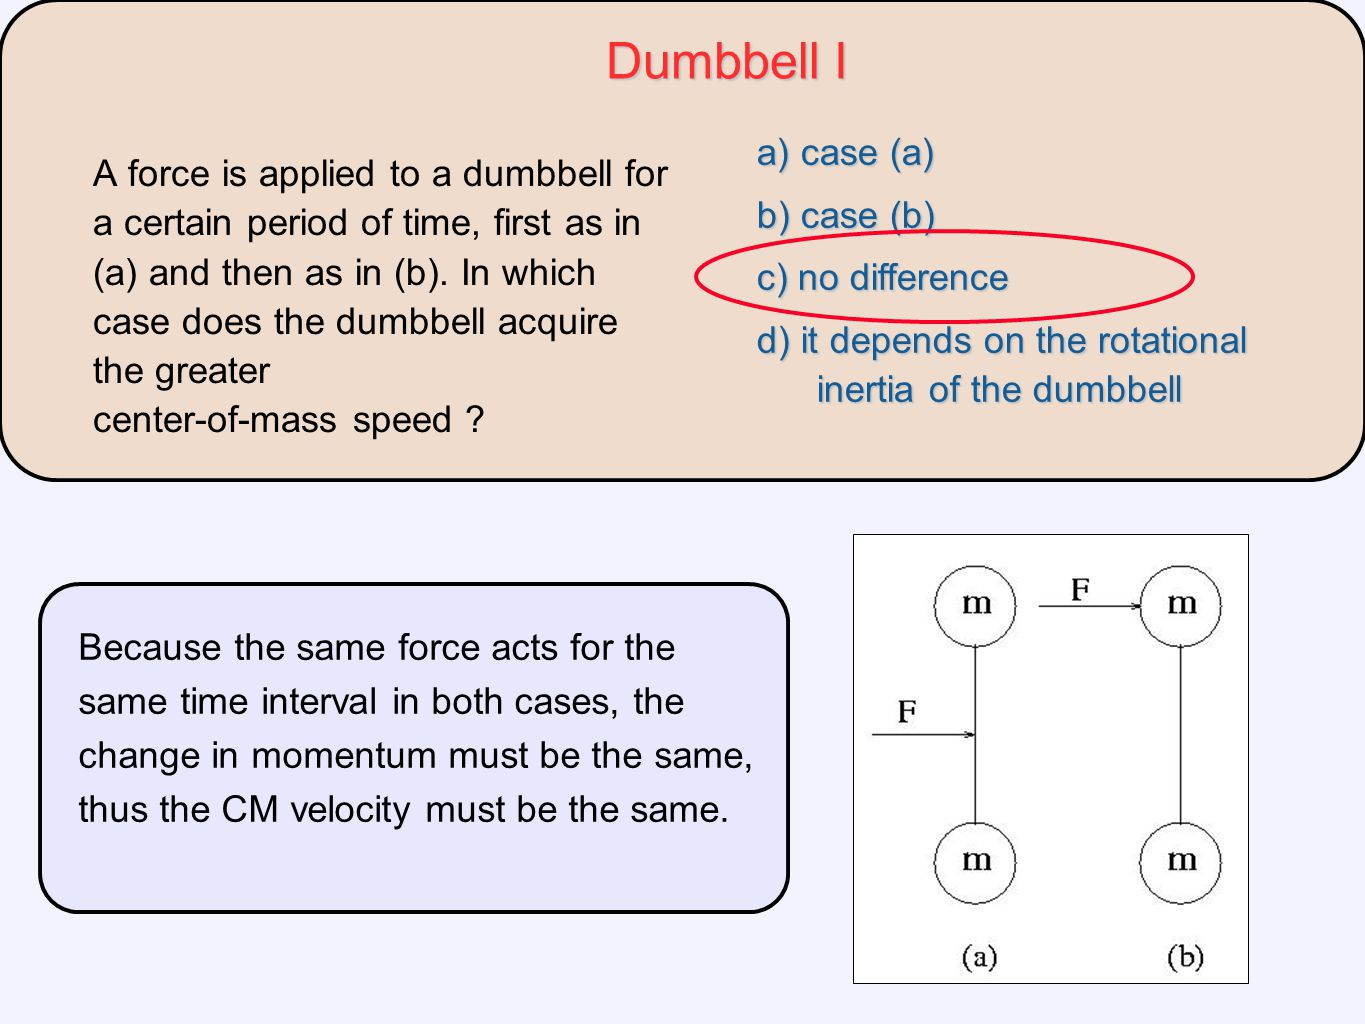 Dumbbell I a) case (a) b) case (b) c) no difference. d) it depends on the rotational inertia of the dumbbell.